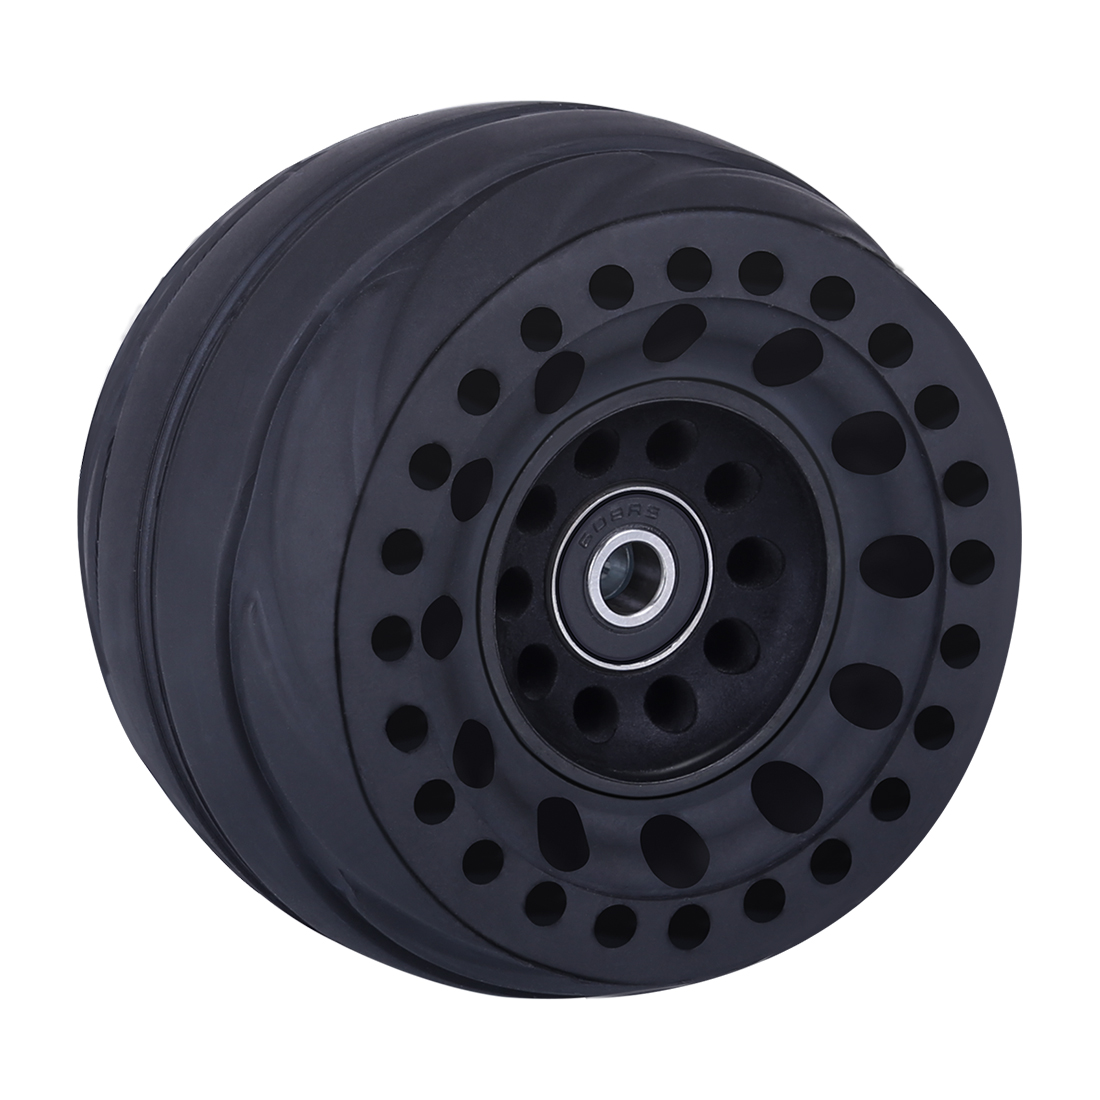 105 x 68mm Honeycomb Airless Rubber Tire